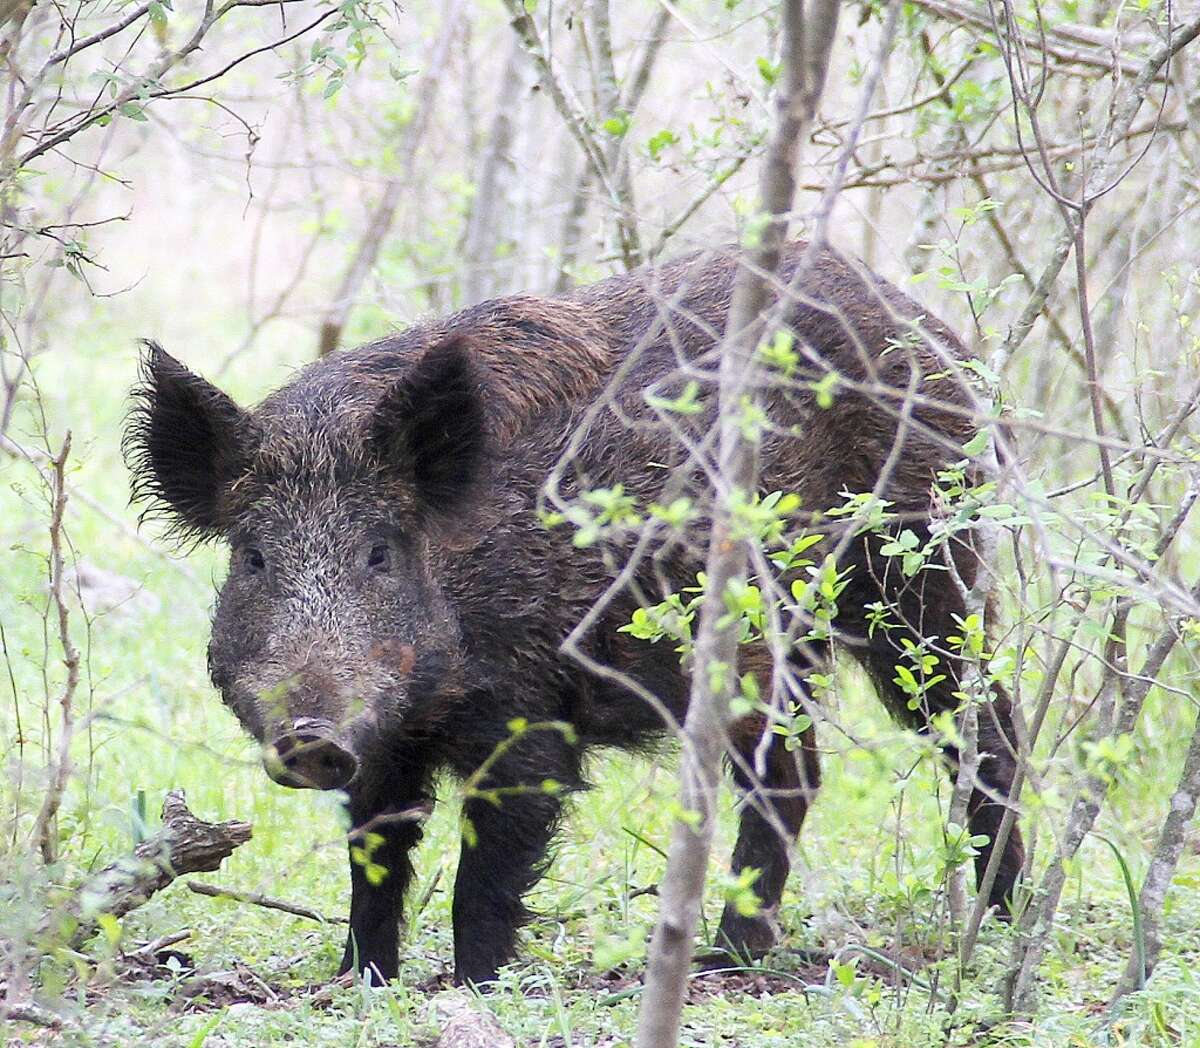 Ranchers and sportsmen introduced European wild hogs to Texas in the 1930s for hunting. Most of the hogs escaped from game ranches and the rest of the nightmare is history.